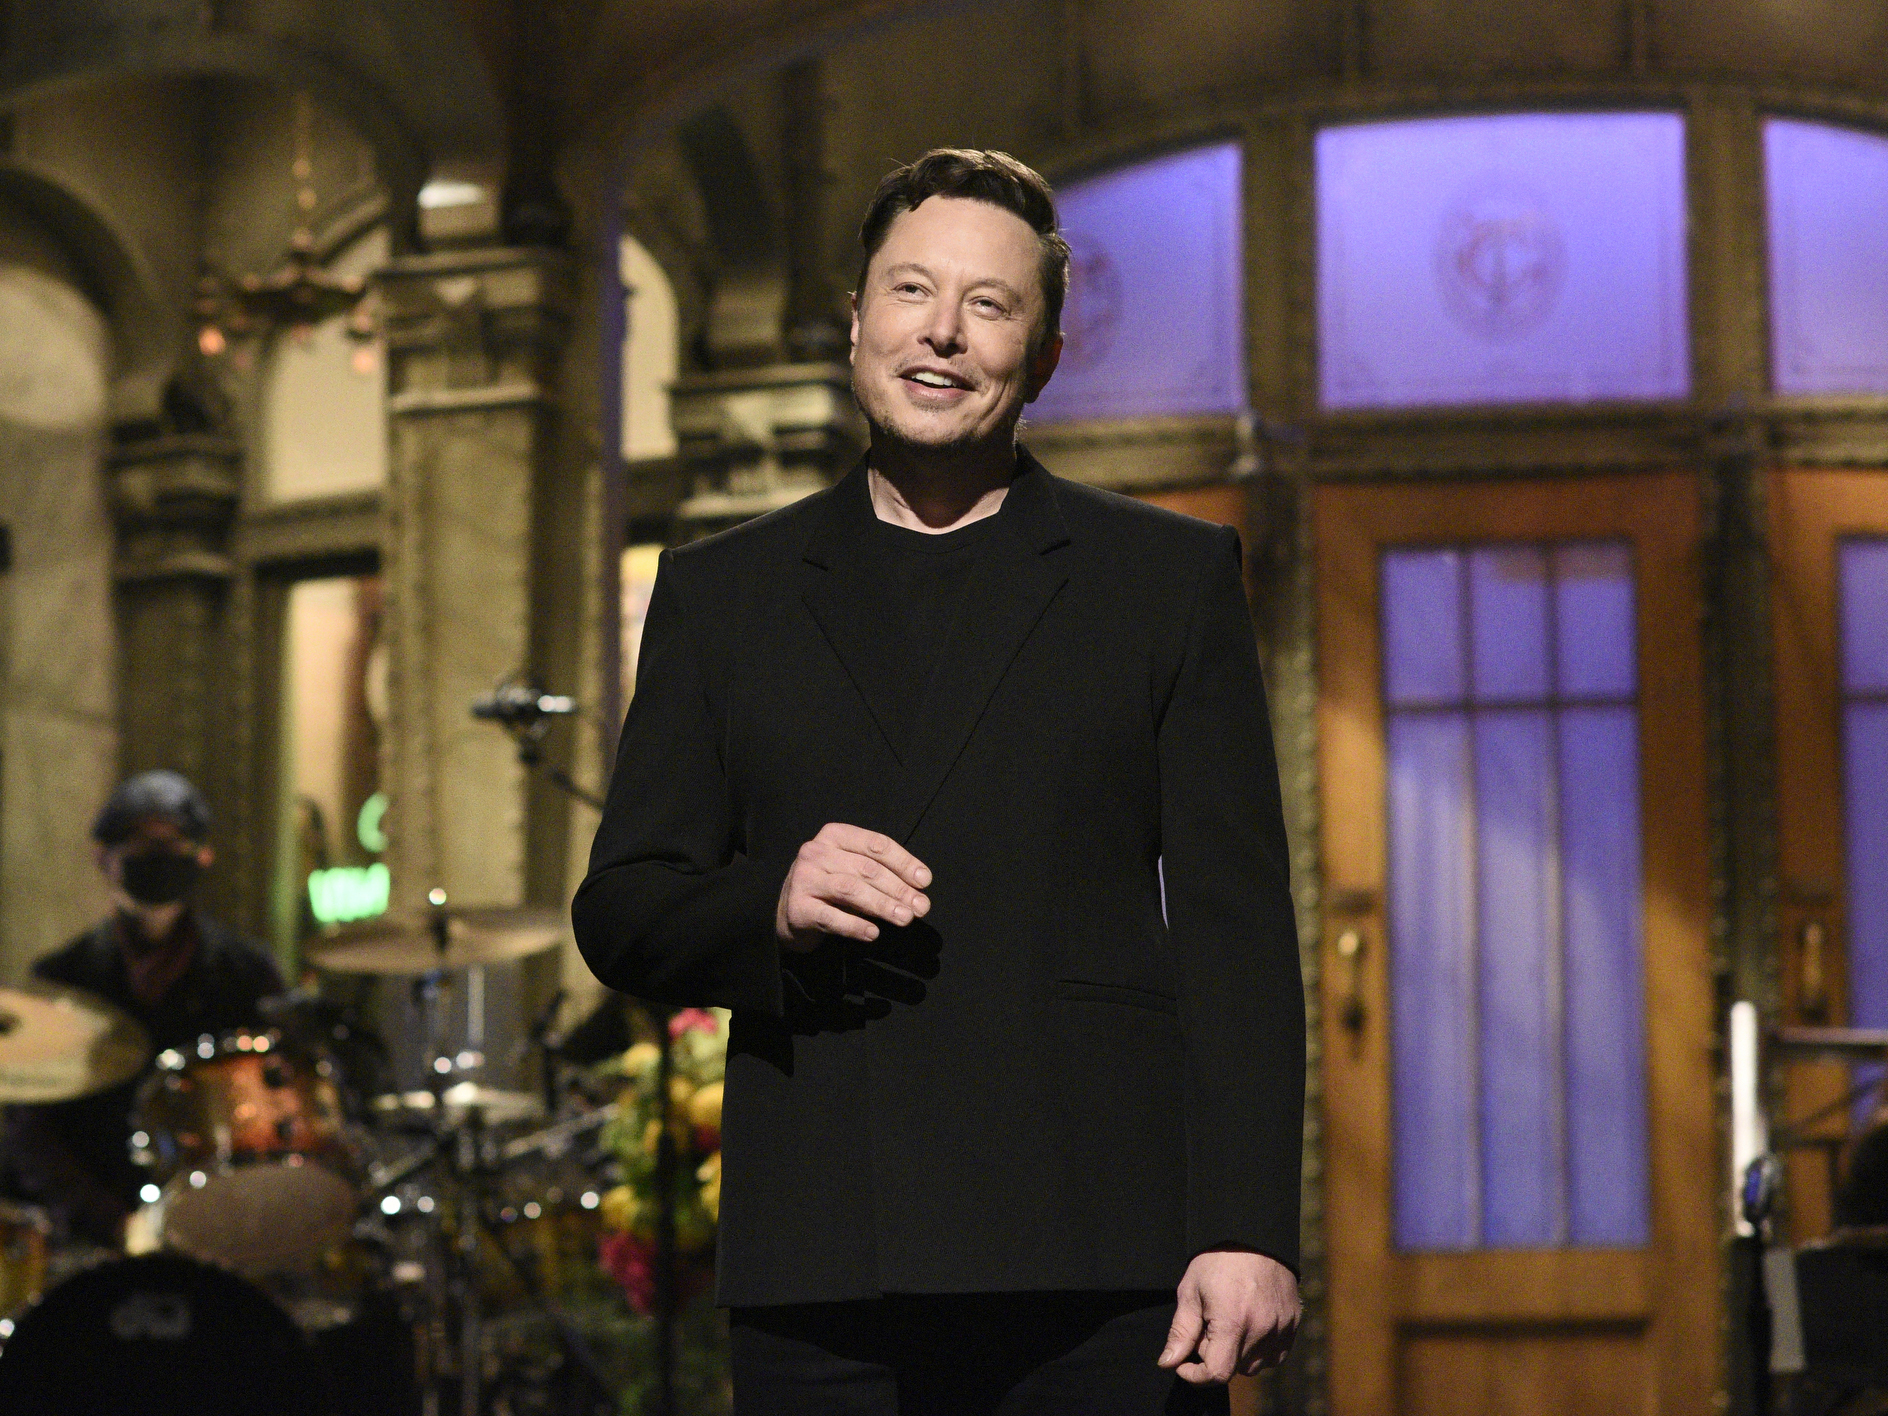 """Tesla CEO Elon Musk delivers his opening monologue on """"Saturday Night Live"""" last week in an image released by NBC. Musk tweeted on Wednesday that Tesla would no longer accept cryptocurrency Bitcoin for car purchases."""